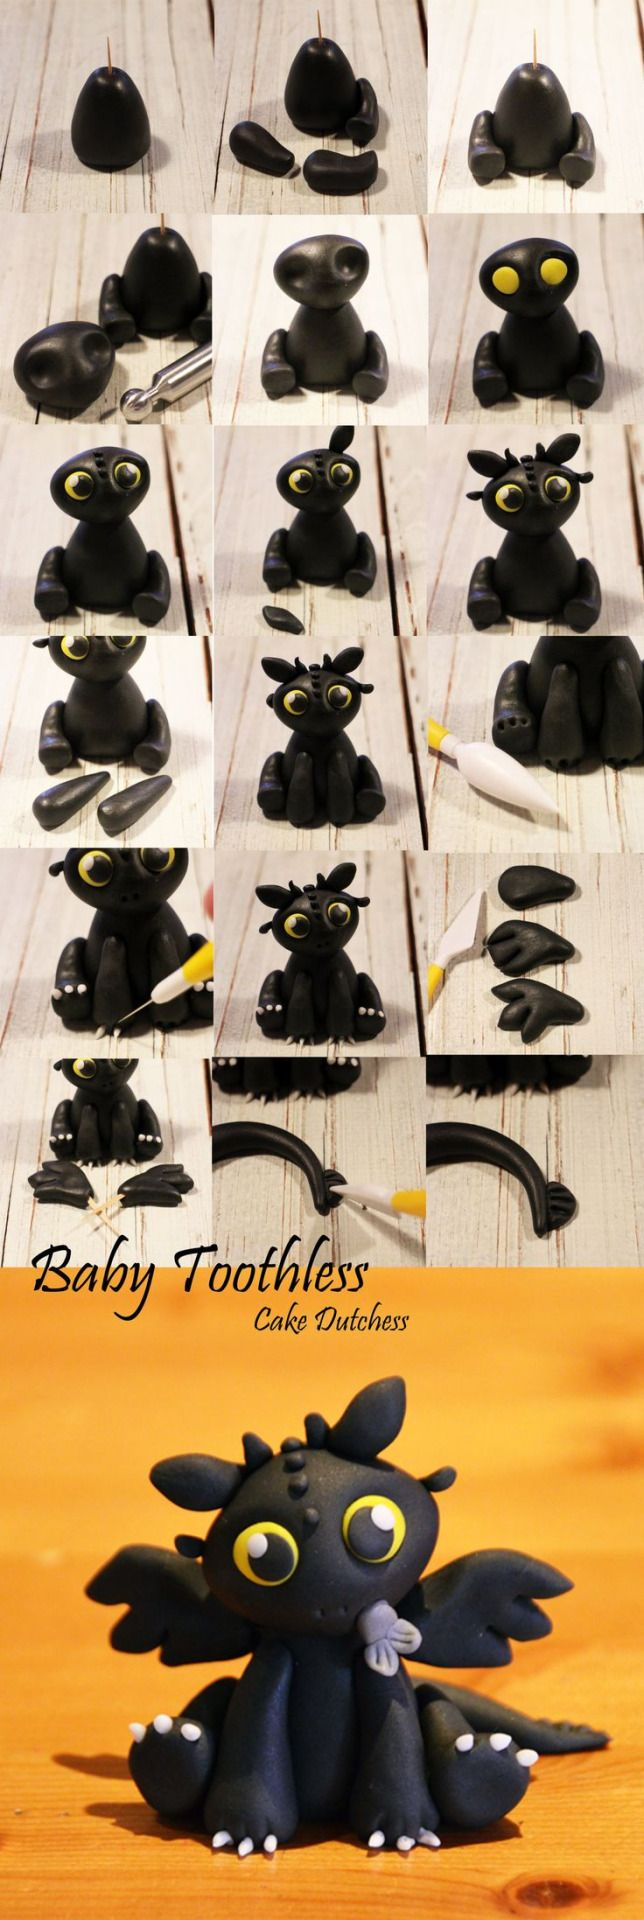 Baby Toothless Tutorial by Naera the Cake Dutchess. How To Train Your Dragon i am going to try to make this out of clayView The Recipe Details